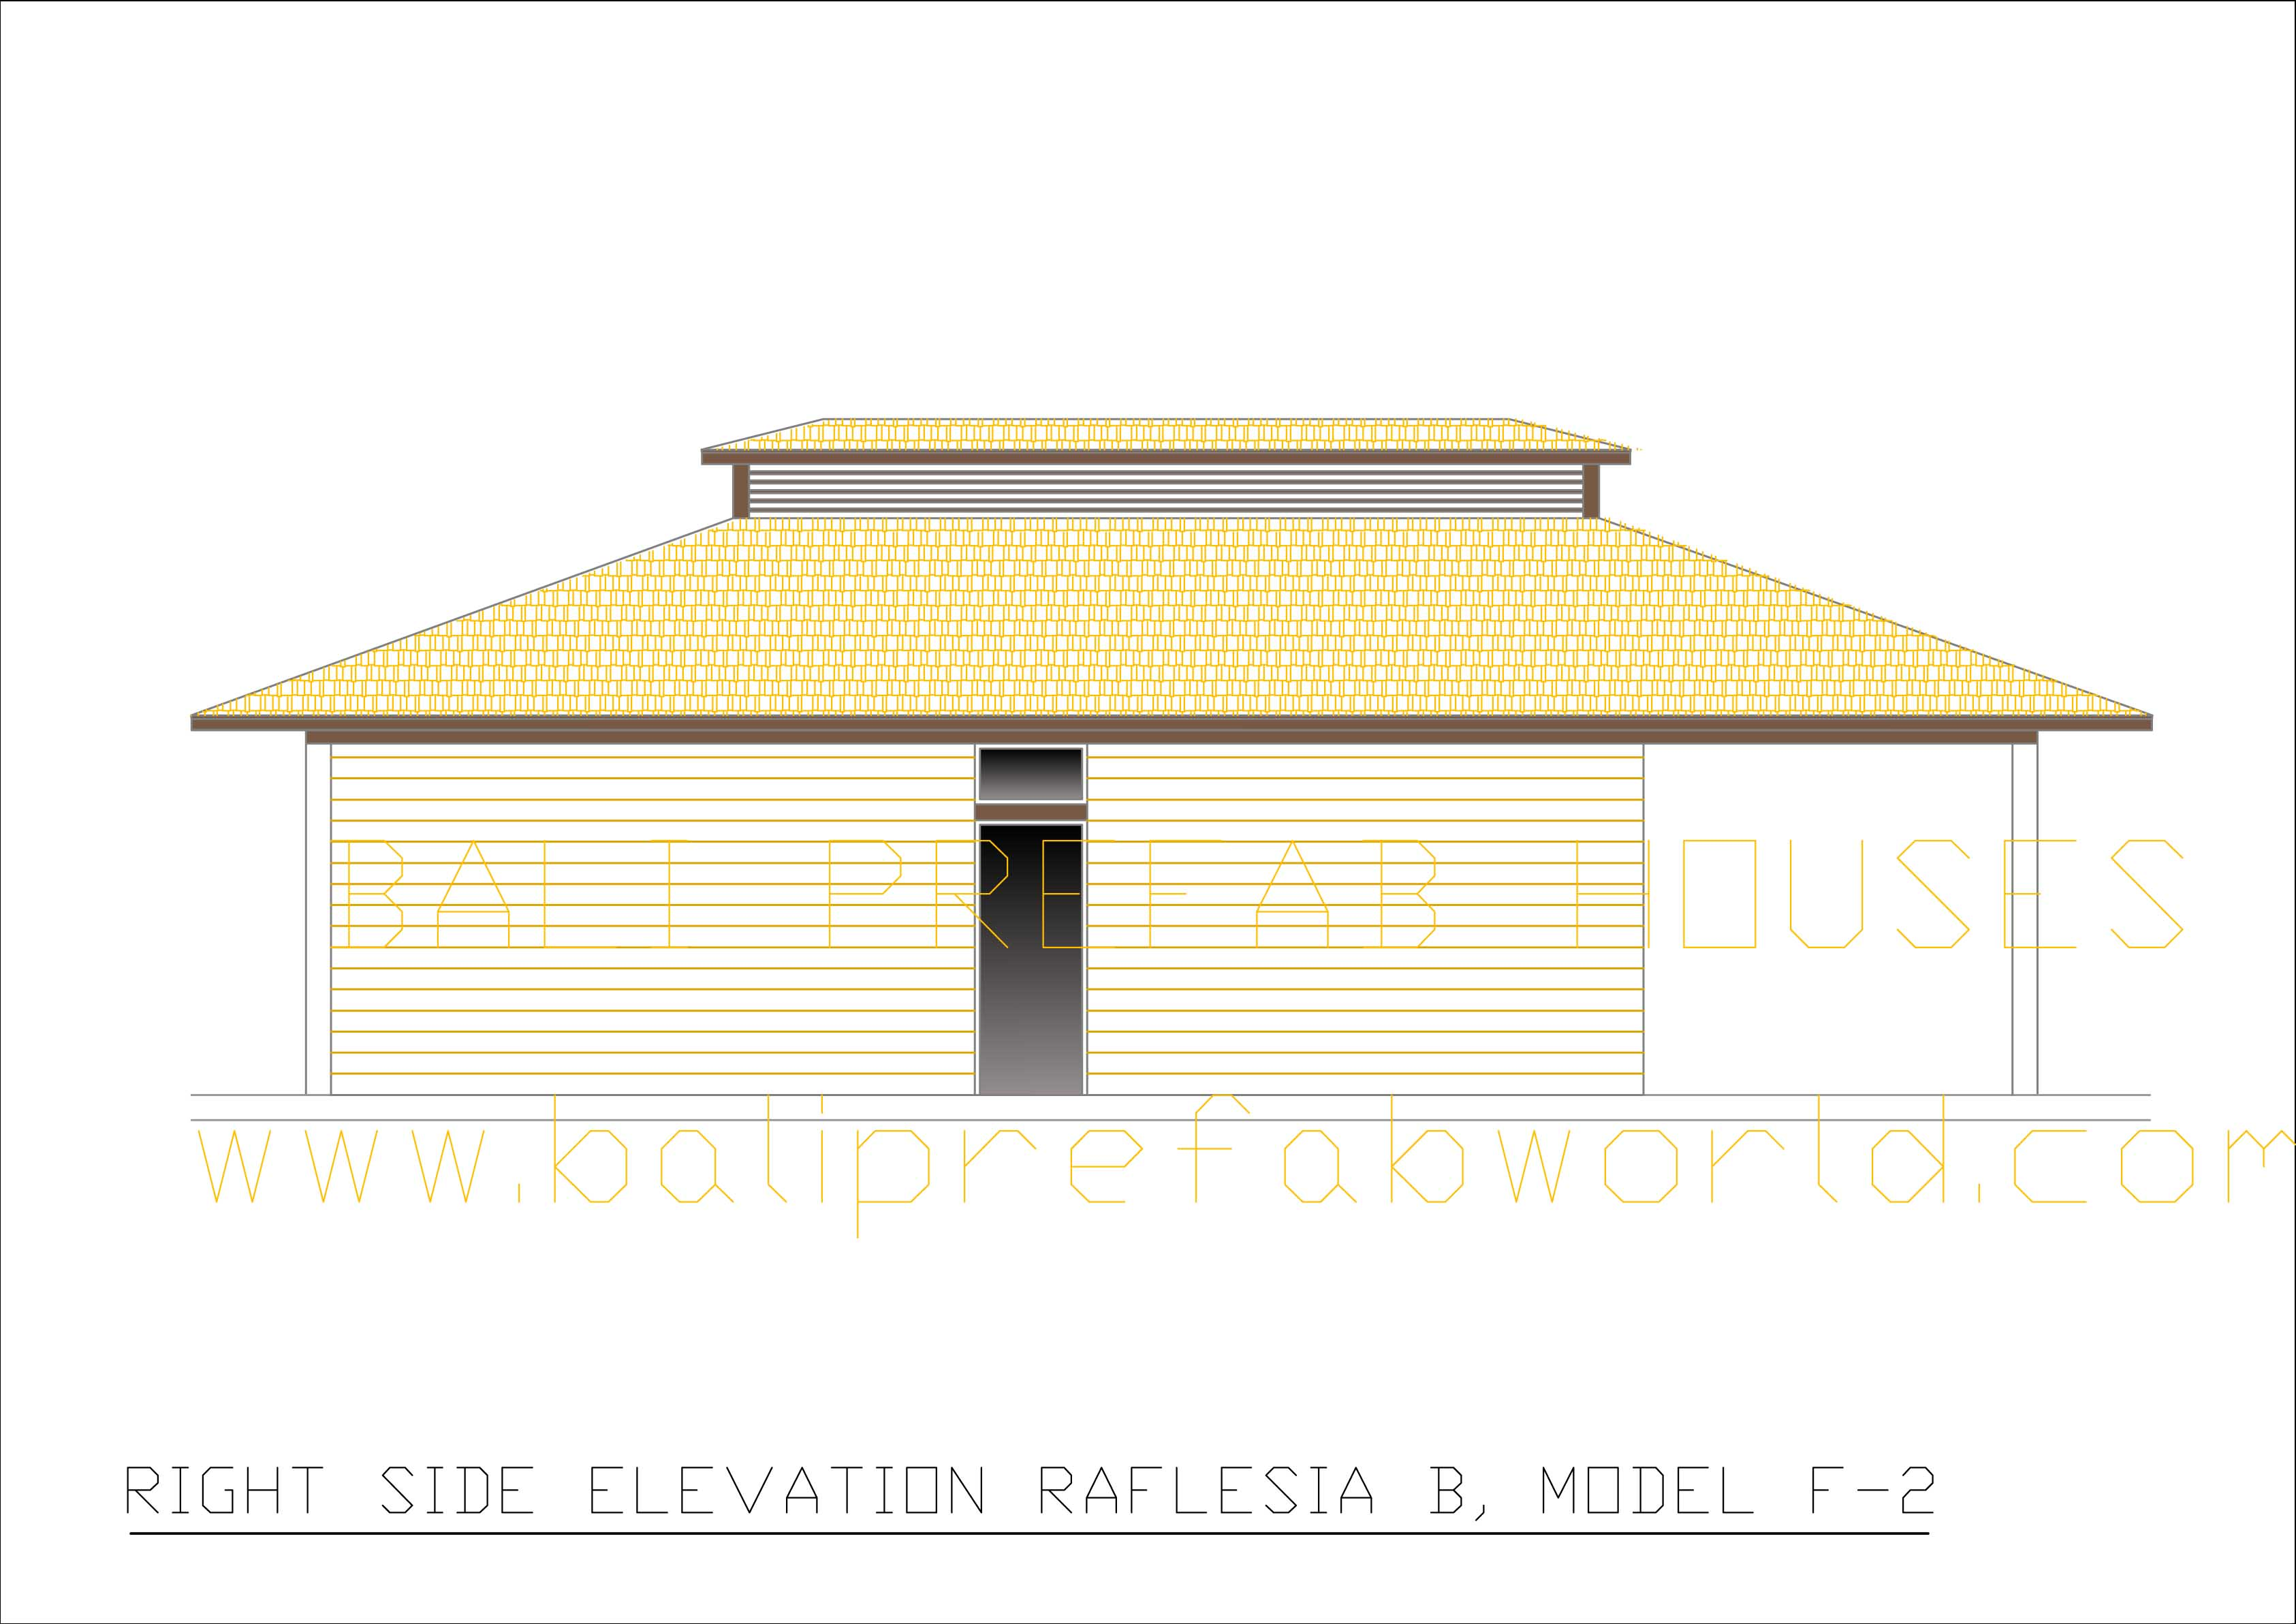 Raflesia-B right side elevation